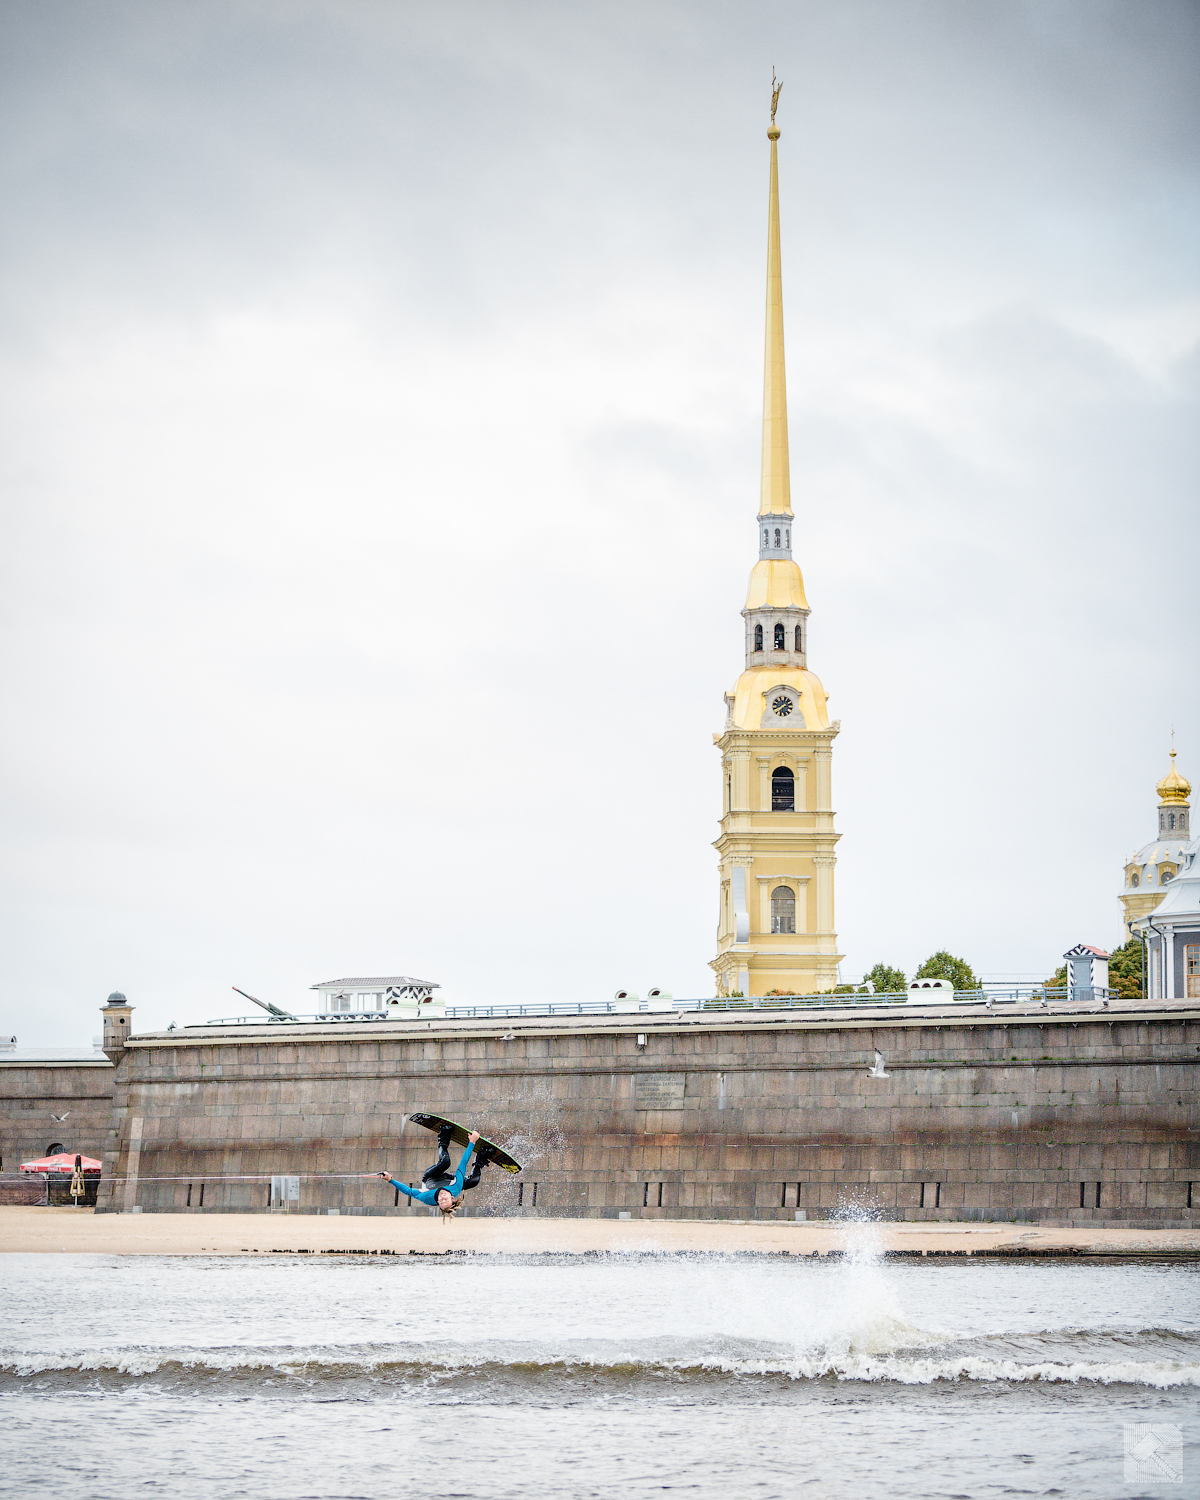 wakeboard, wakeboarding, saint-petersburg, spb, photomolotov, Алексей Шабанов, Алексей Шабанов фотограф, Алексей Молотов фото, Алексей Молотов фотограф, вейкбординг, вейкборд, Река Нева, Санкт-Петербург, Спб, Экстрим фото, Extreme Photo